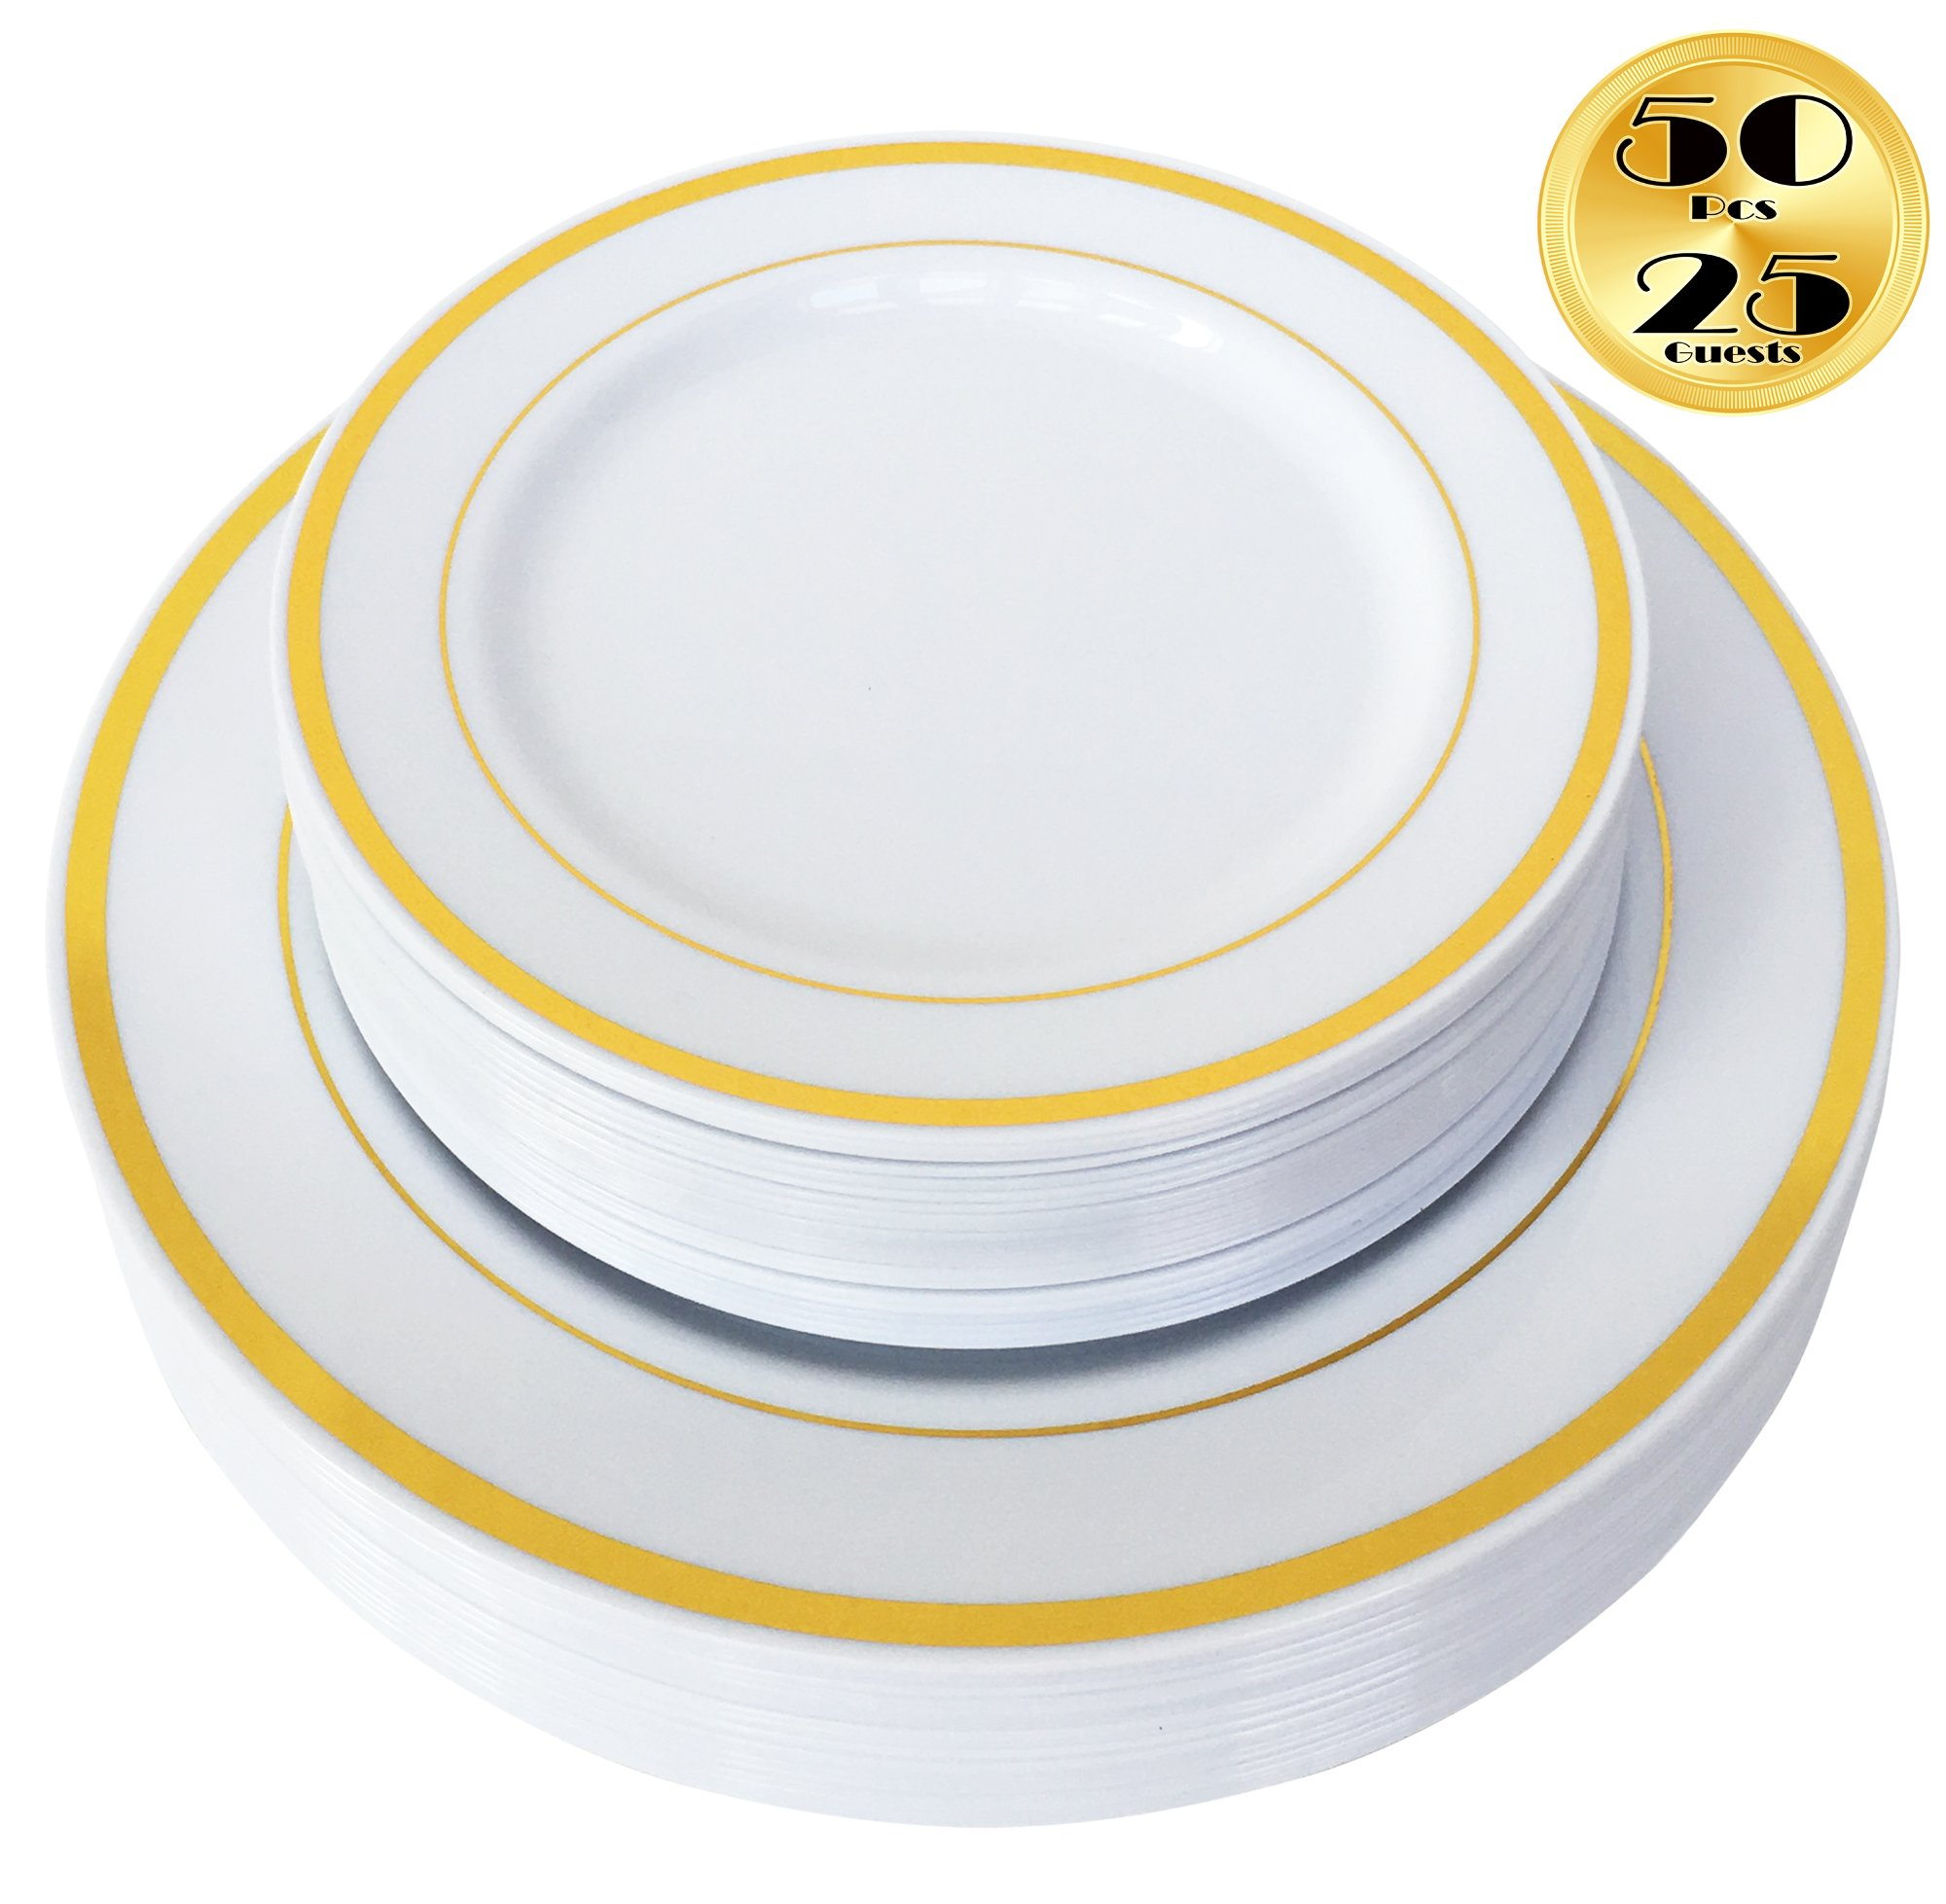 6 Pieces 7 inch Gold Edge Paper Plates Birthday Plates Party Tableware